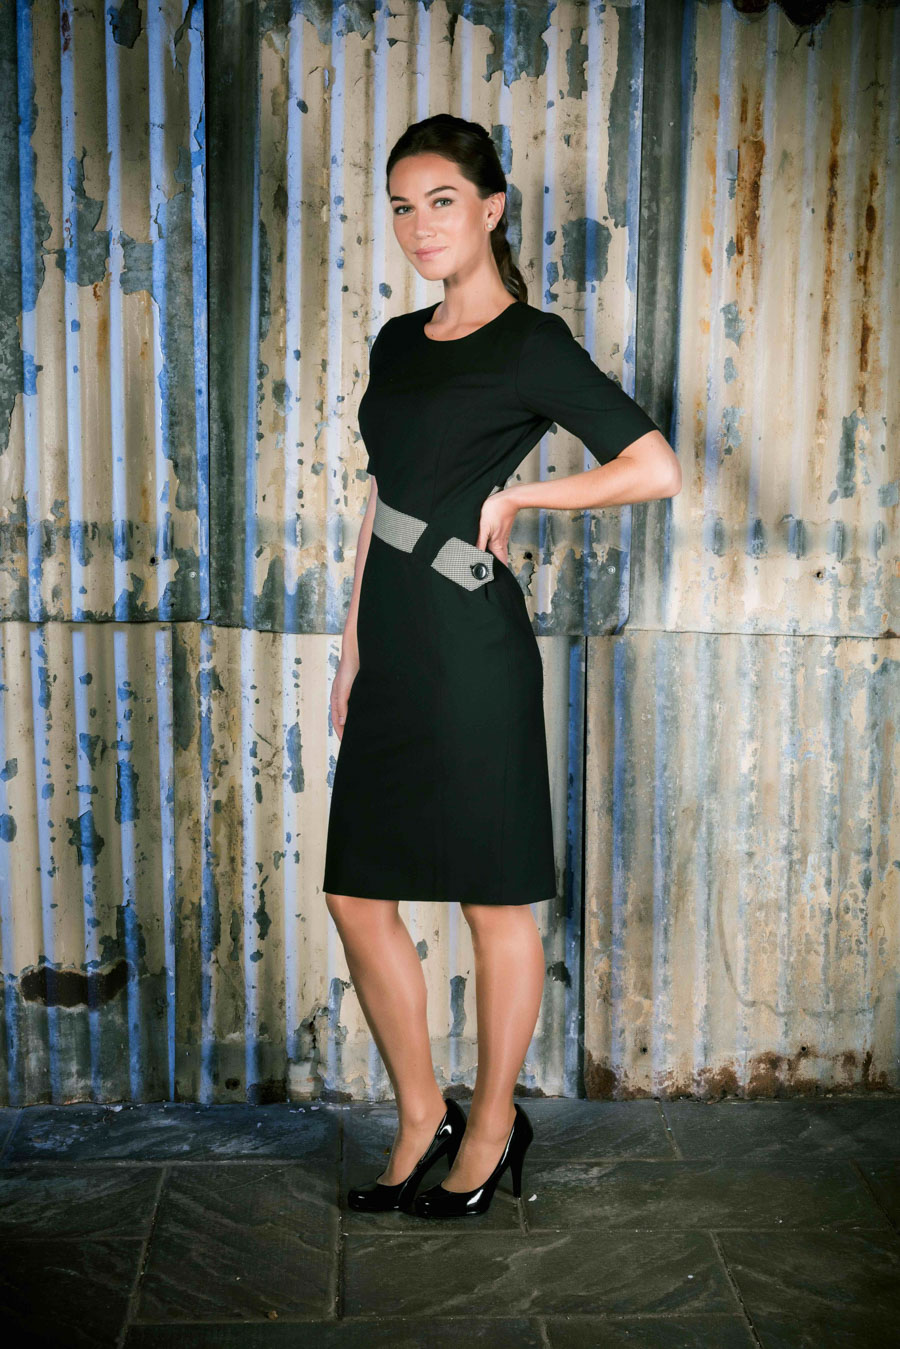 Row 16 _ Female Image No.1 _ Blk Dress & Grey Belt